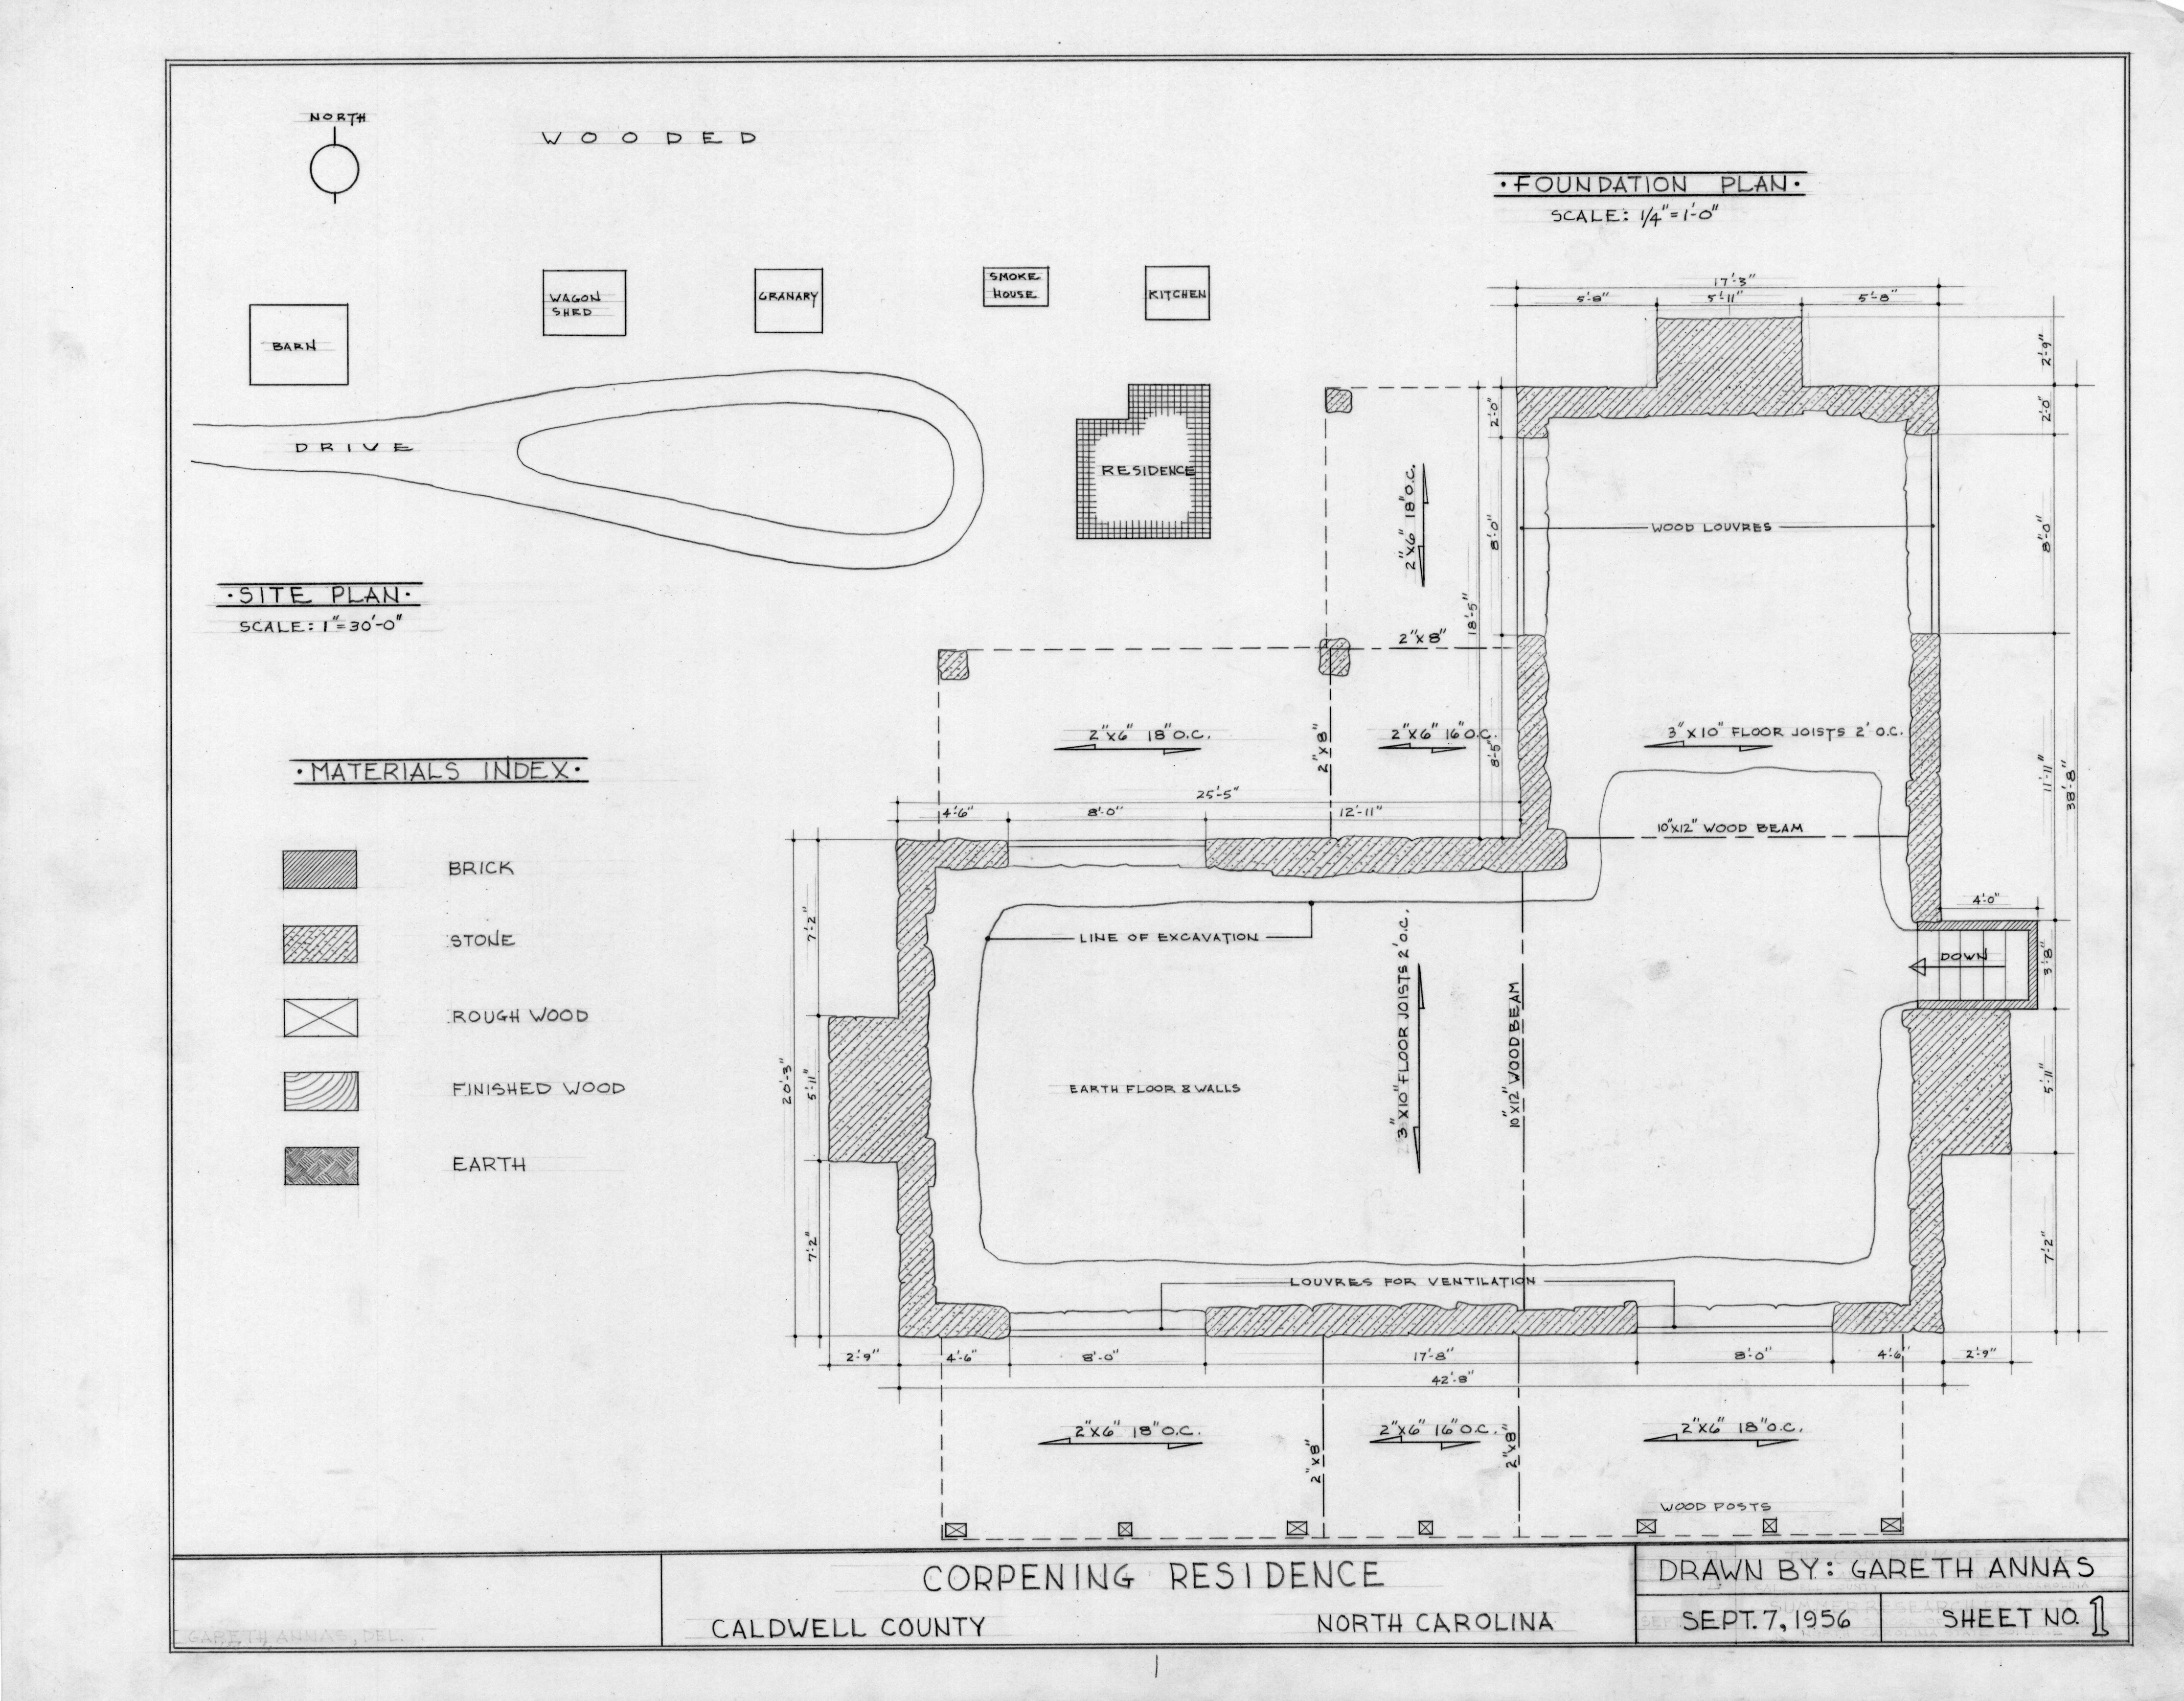 Site Plan Materials Index And Foundation Plan Old